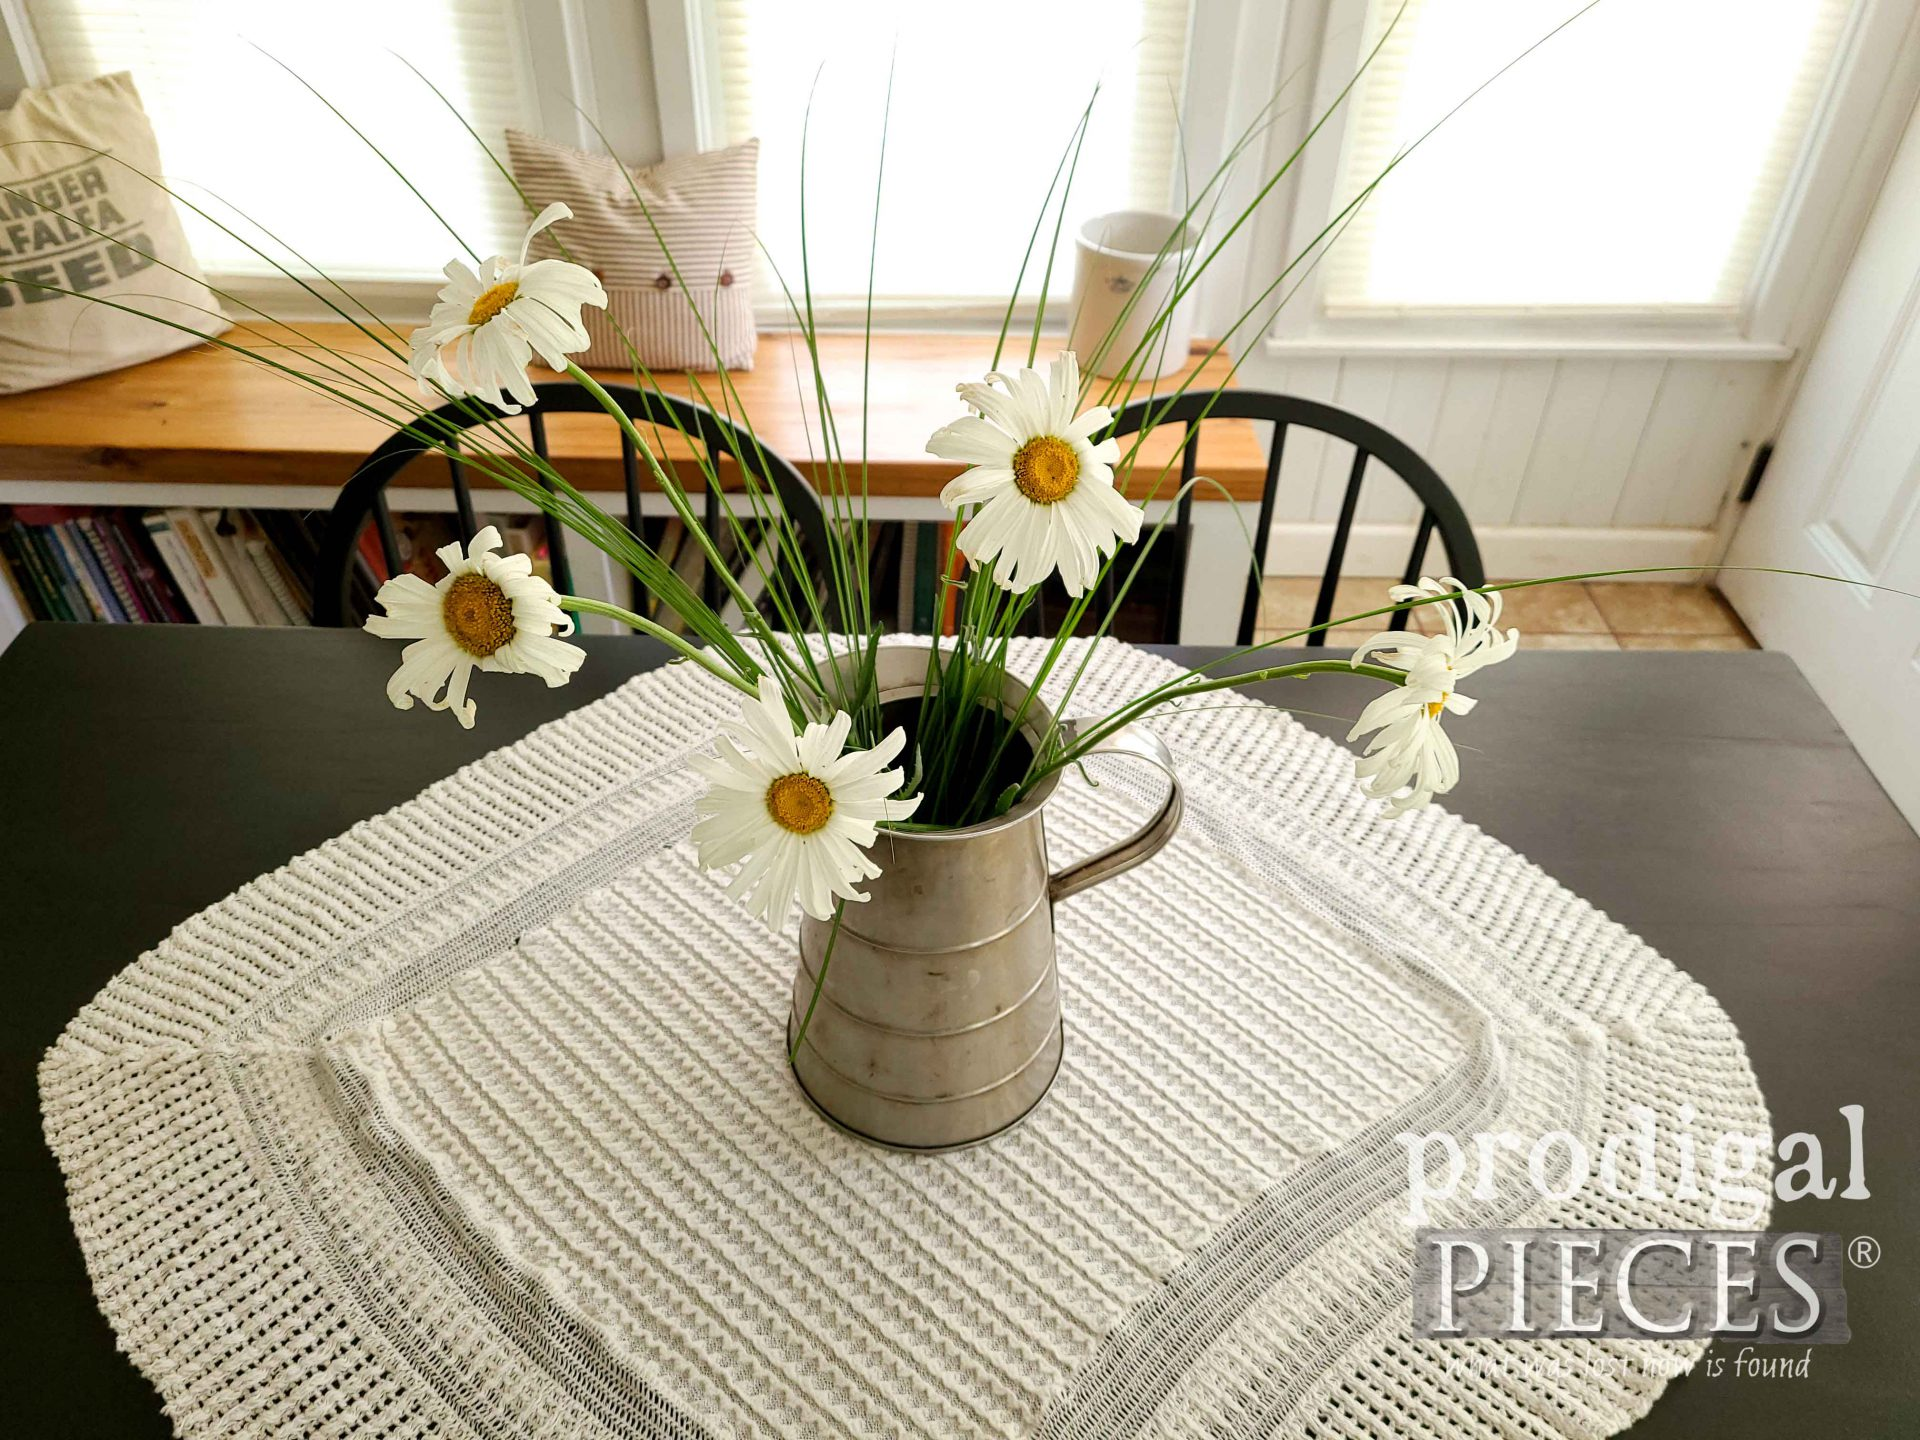 Farmhouse Homegrown Daisies by Prodigal Pieces | prodigalpieces.com #prodigalpieces #flowers #daisies